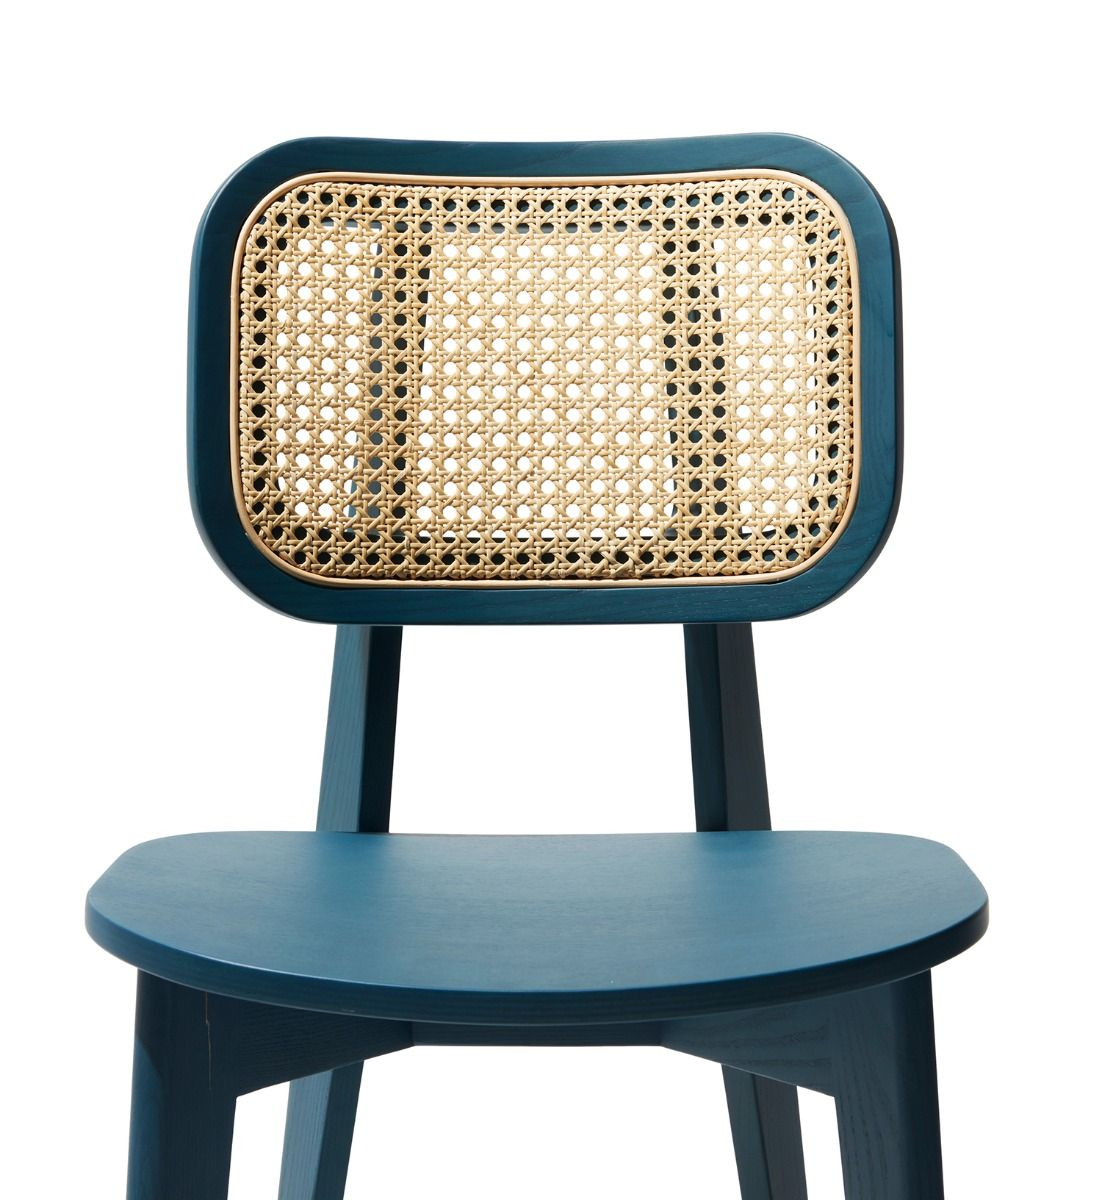 Cane Dining Chair in 2020 | Dining chairs, Chair, Outdoor ...